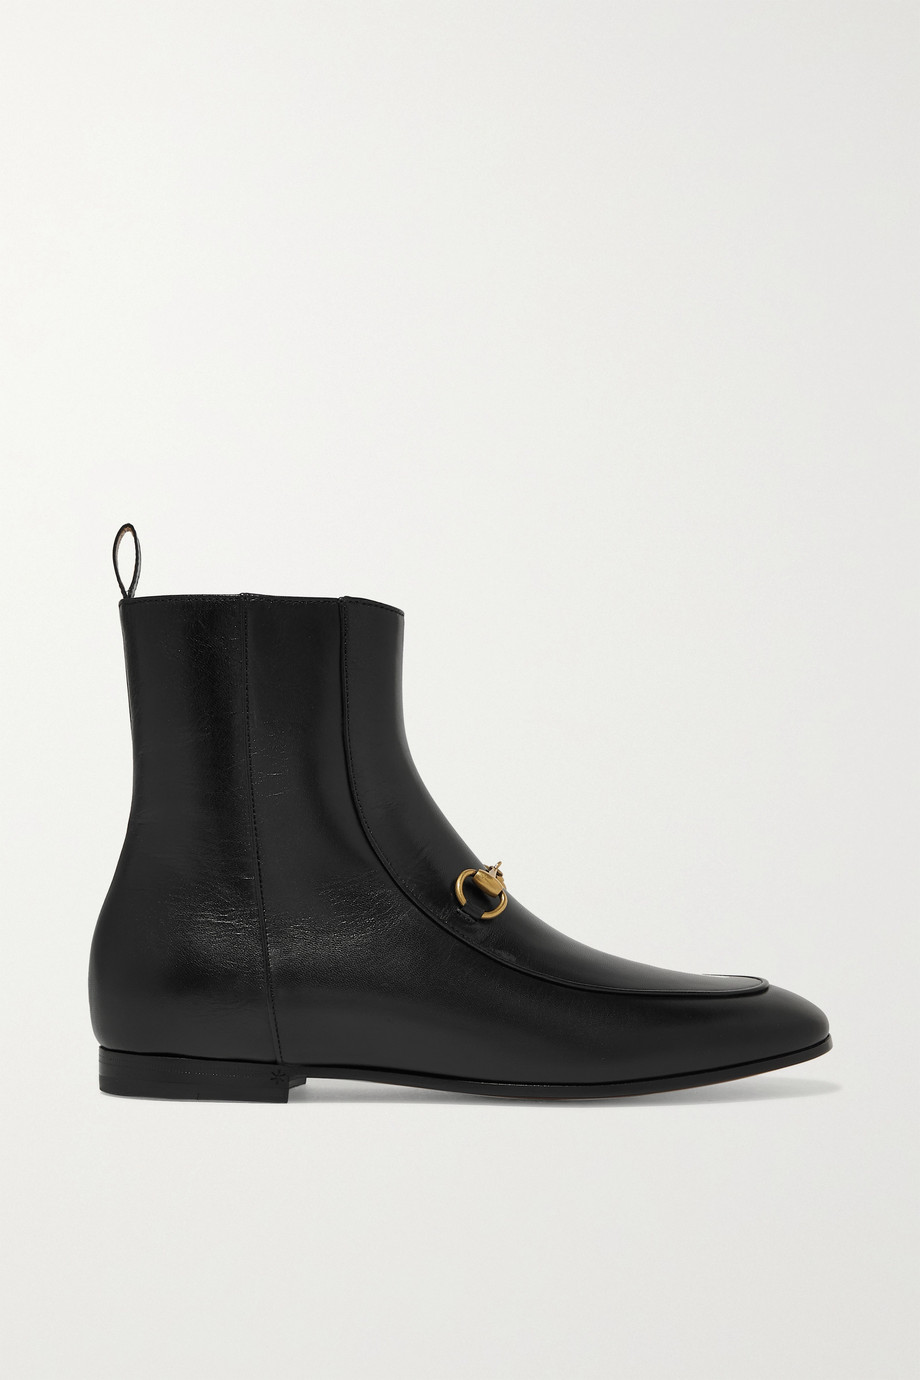 Gucci Jordaan horsebit-detailed leather ankle boots